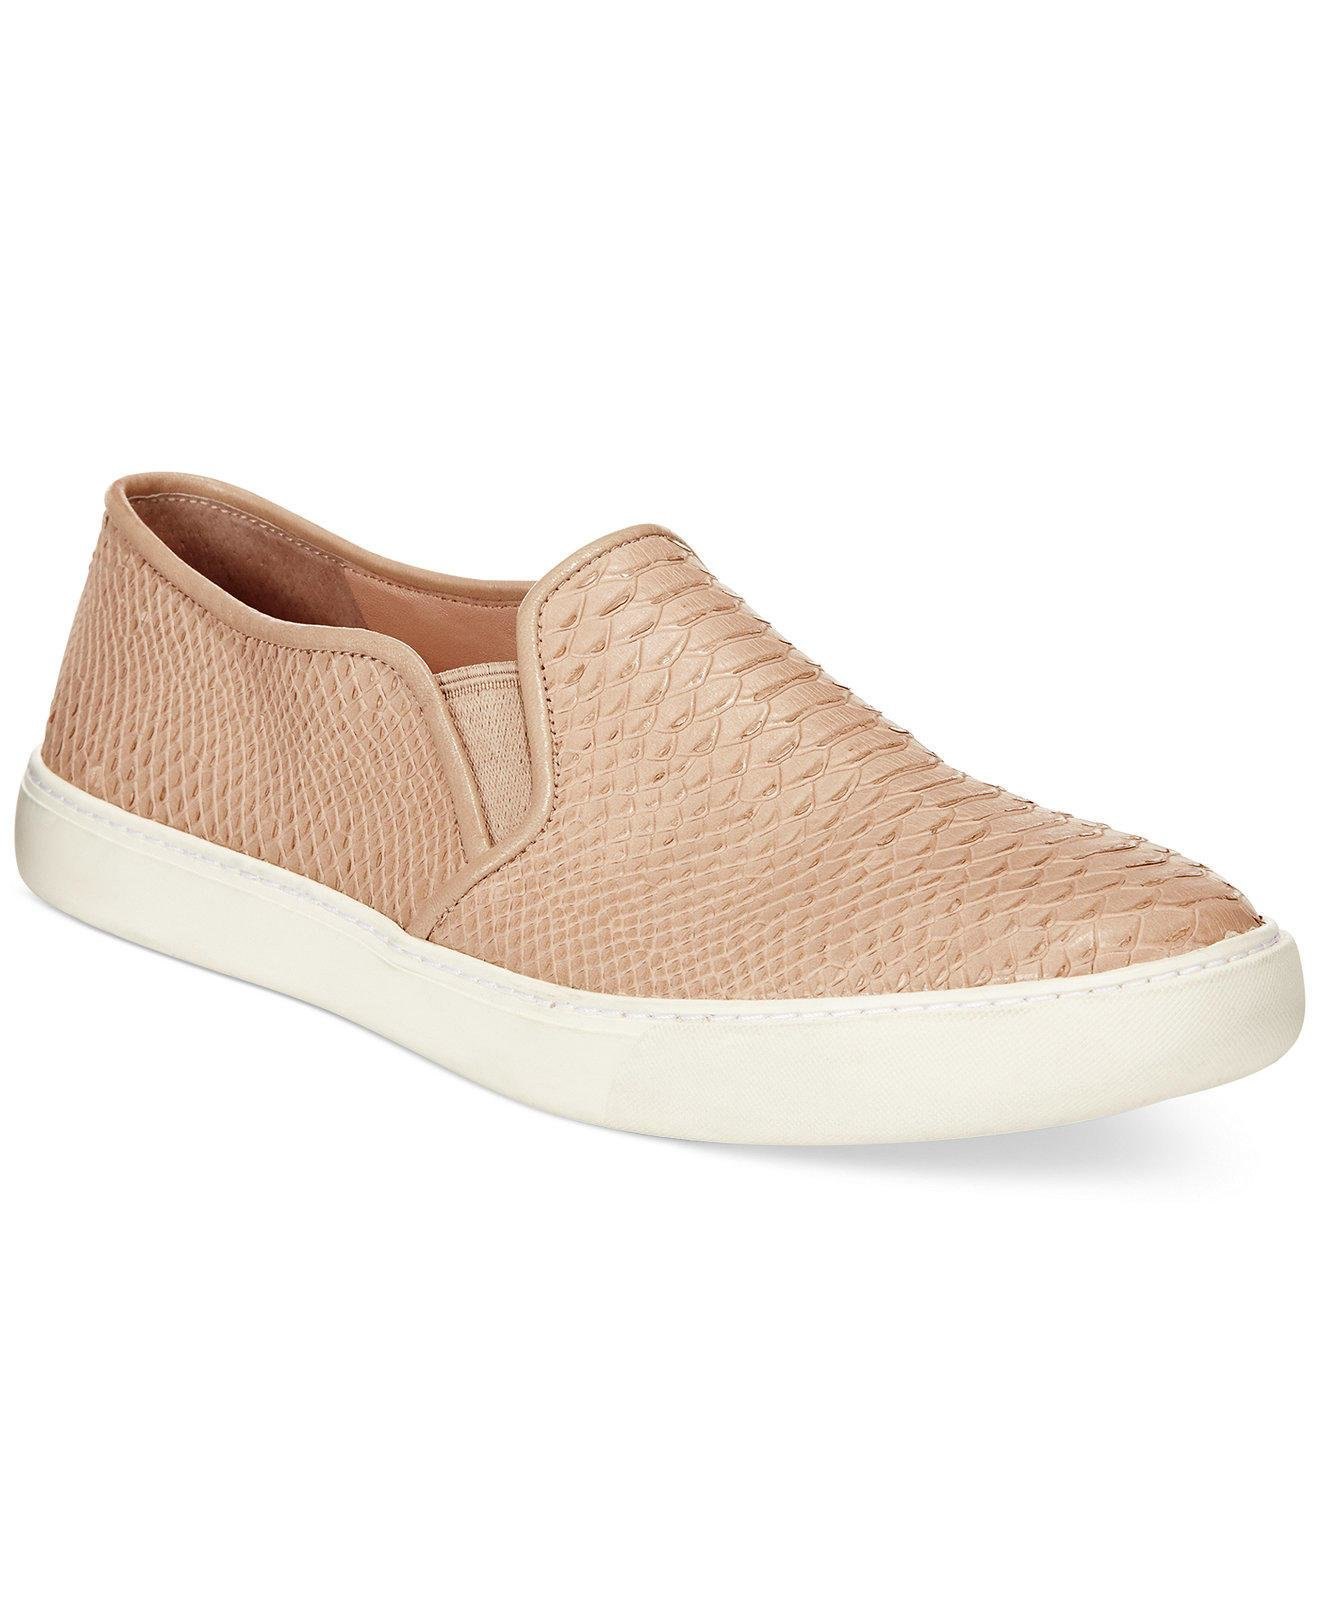 Best Cole Haan Women S Bowie Slip On Sneakers From Macys Shoes With Pictures